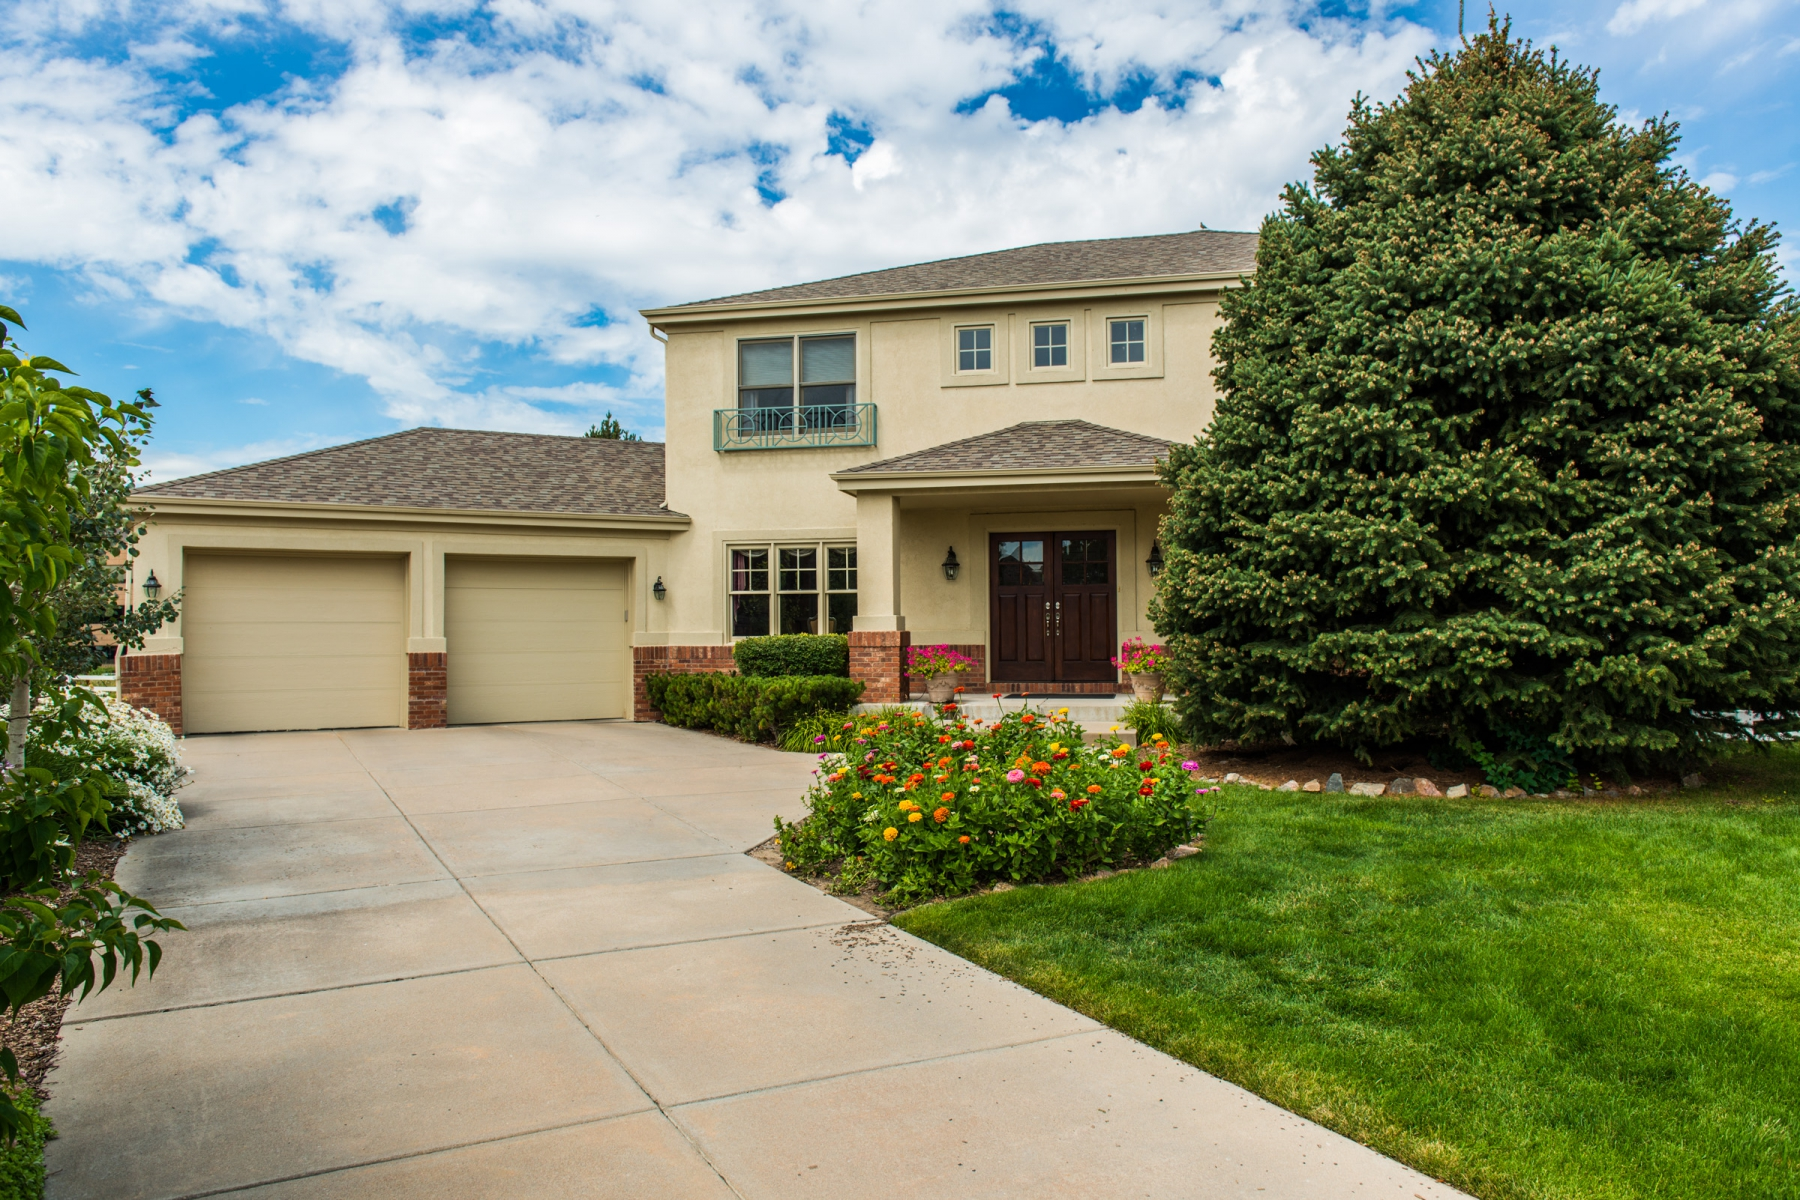 Single Family Home for Sale at Fabulous location with forever mountain views 13910 E Maplewood Pl Centennial, Colorado 80111 United States